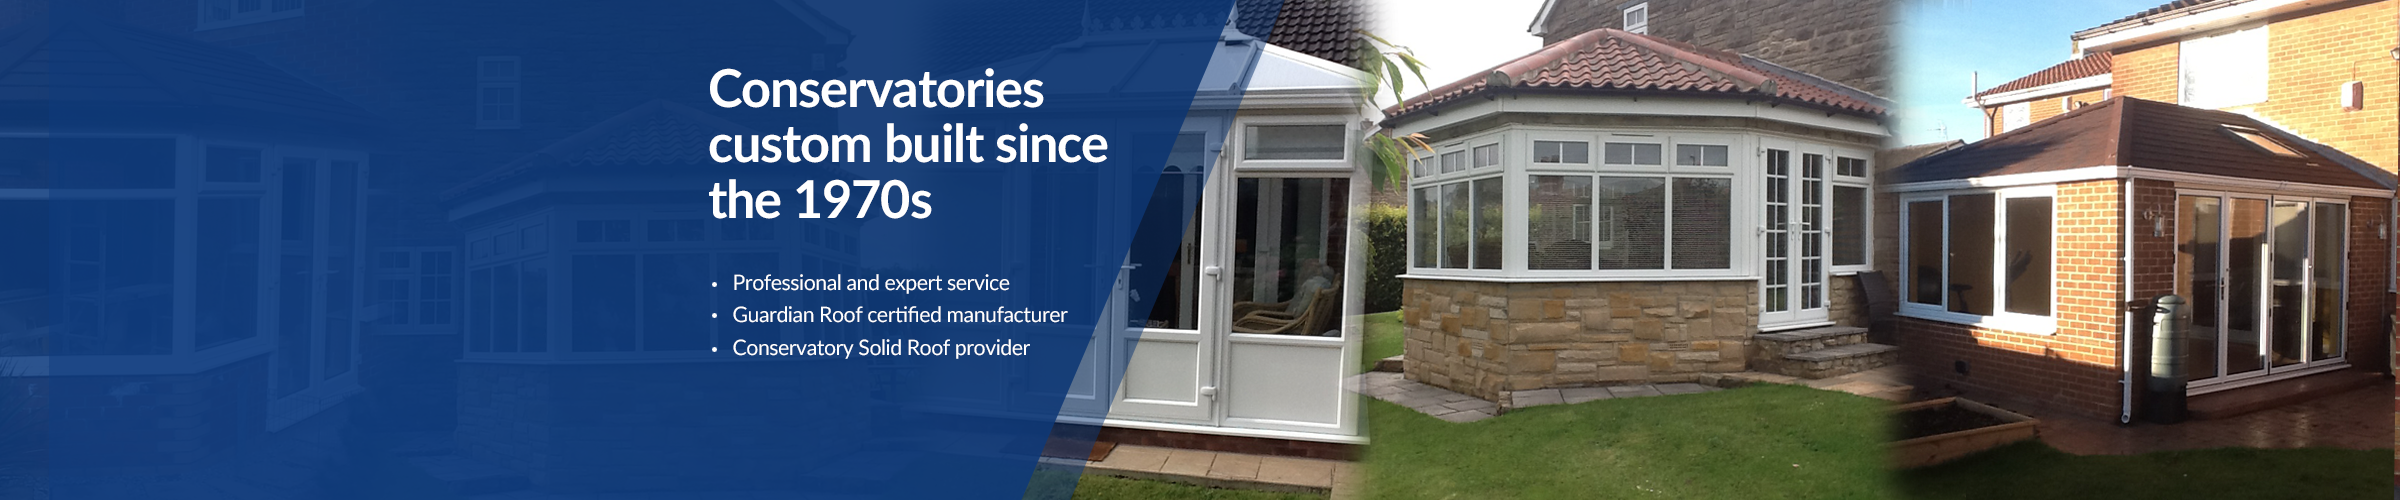 swainstons-conservatories-banner